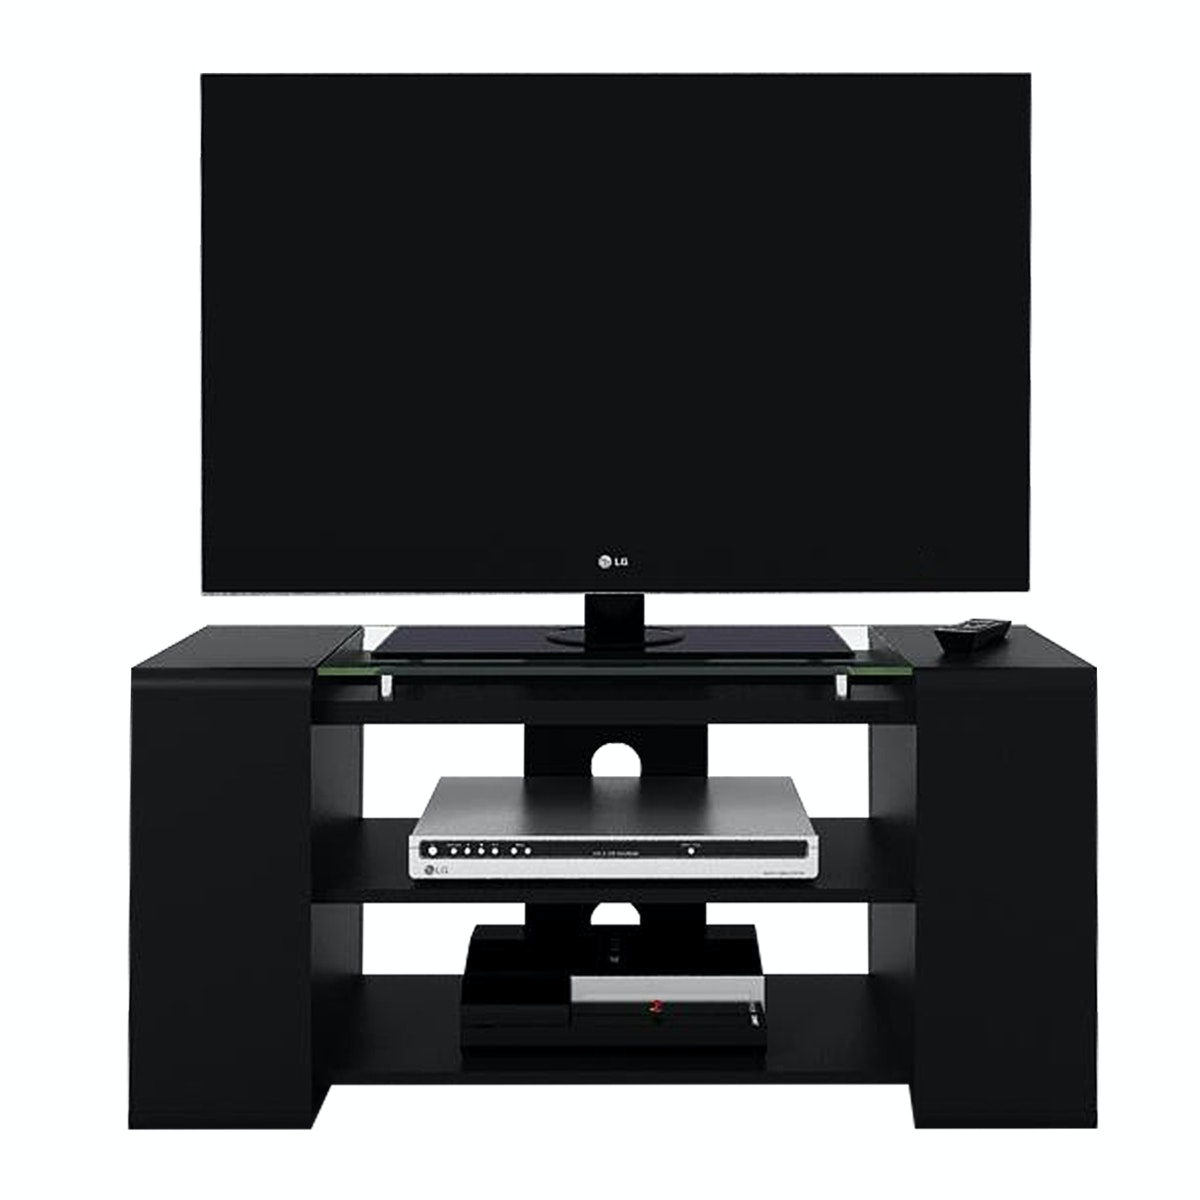 Pro Design PS 100 Rak TV - Hitam